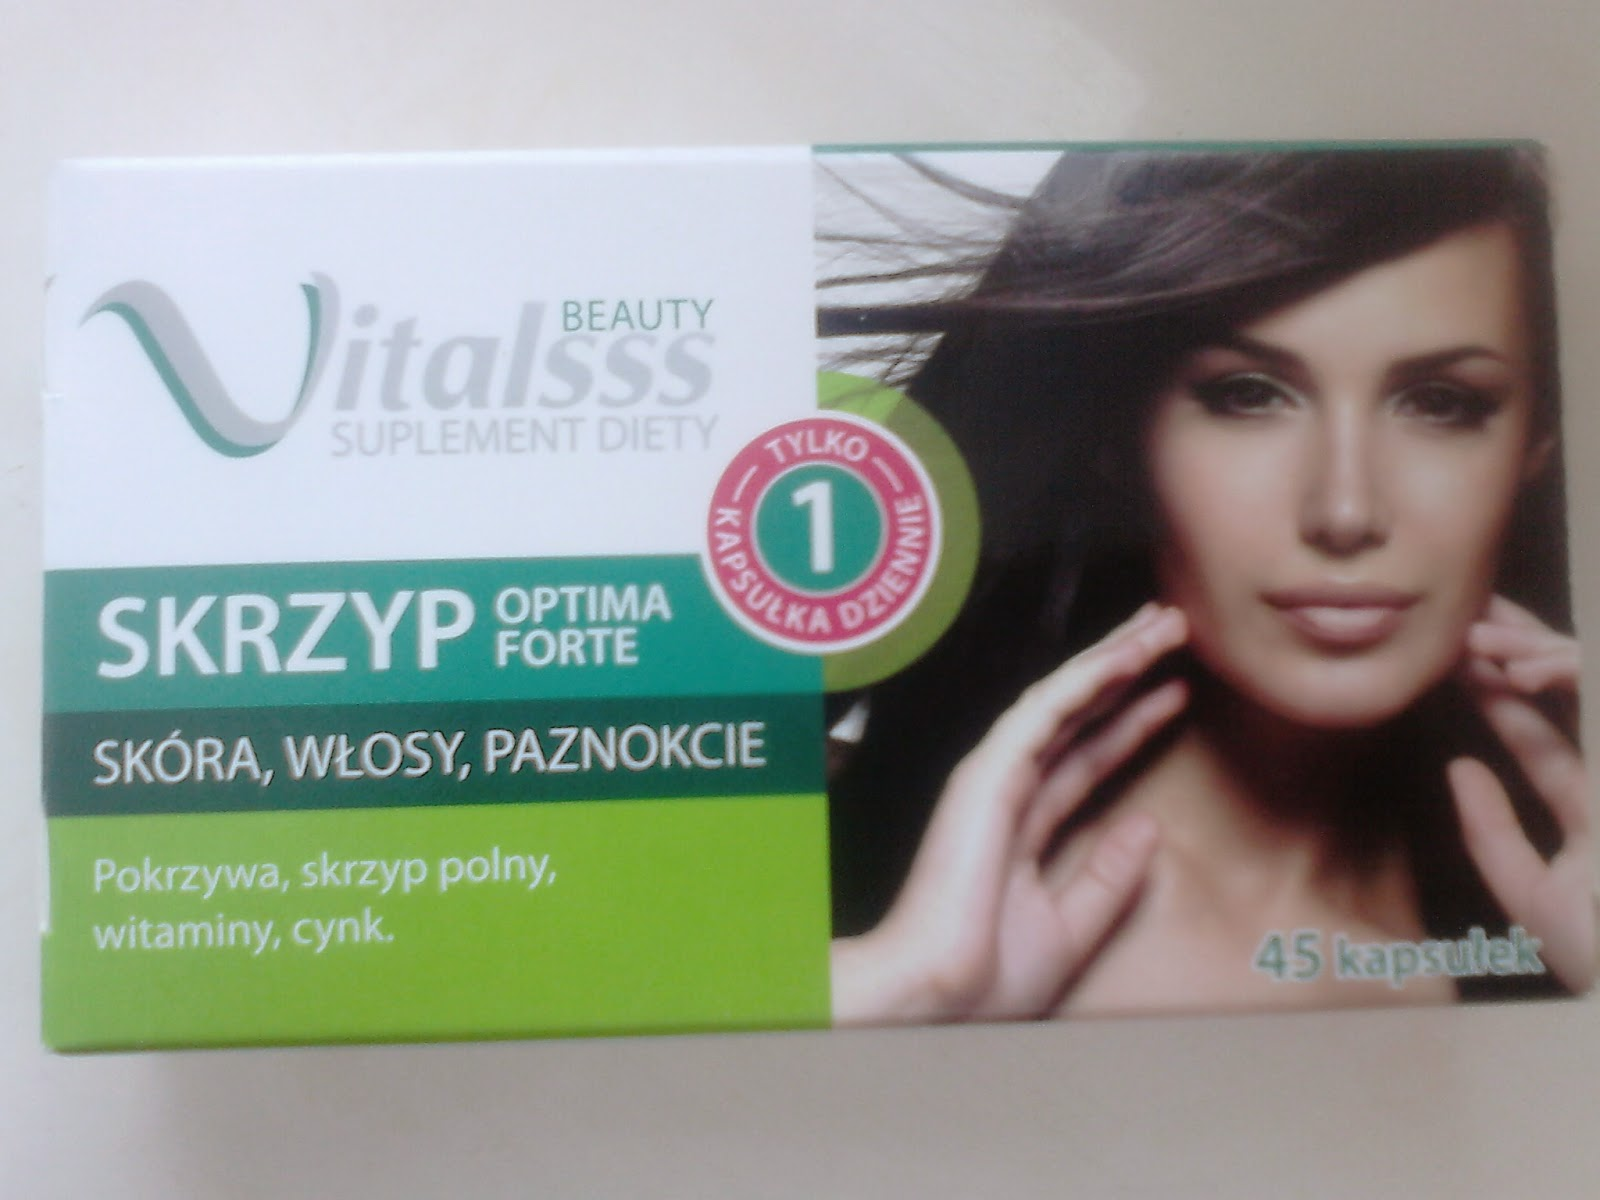 Vitalsss Beauty Suplement Diety